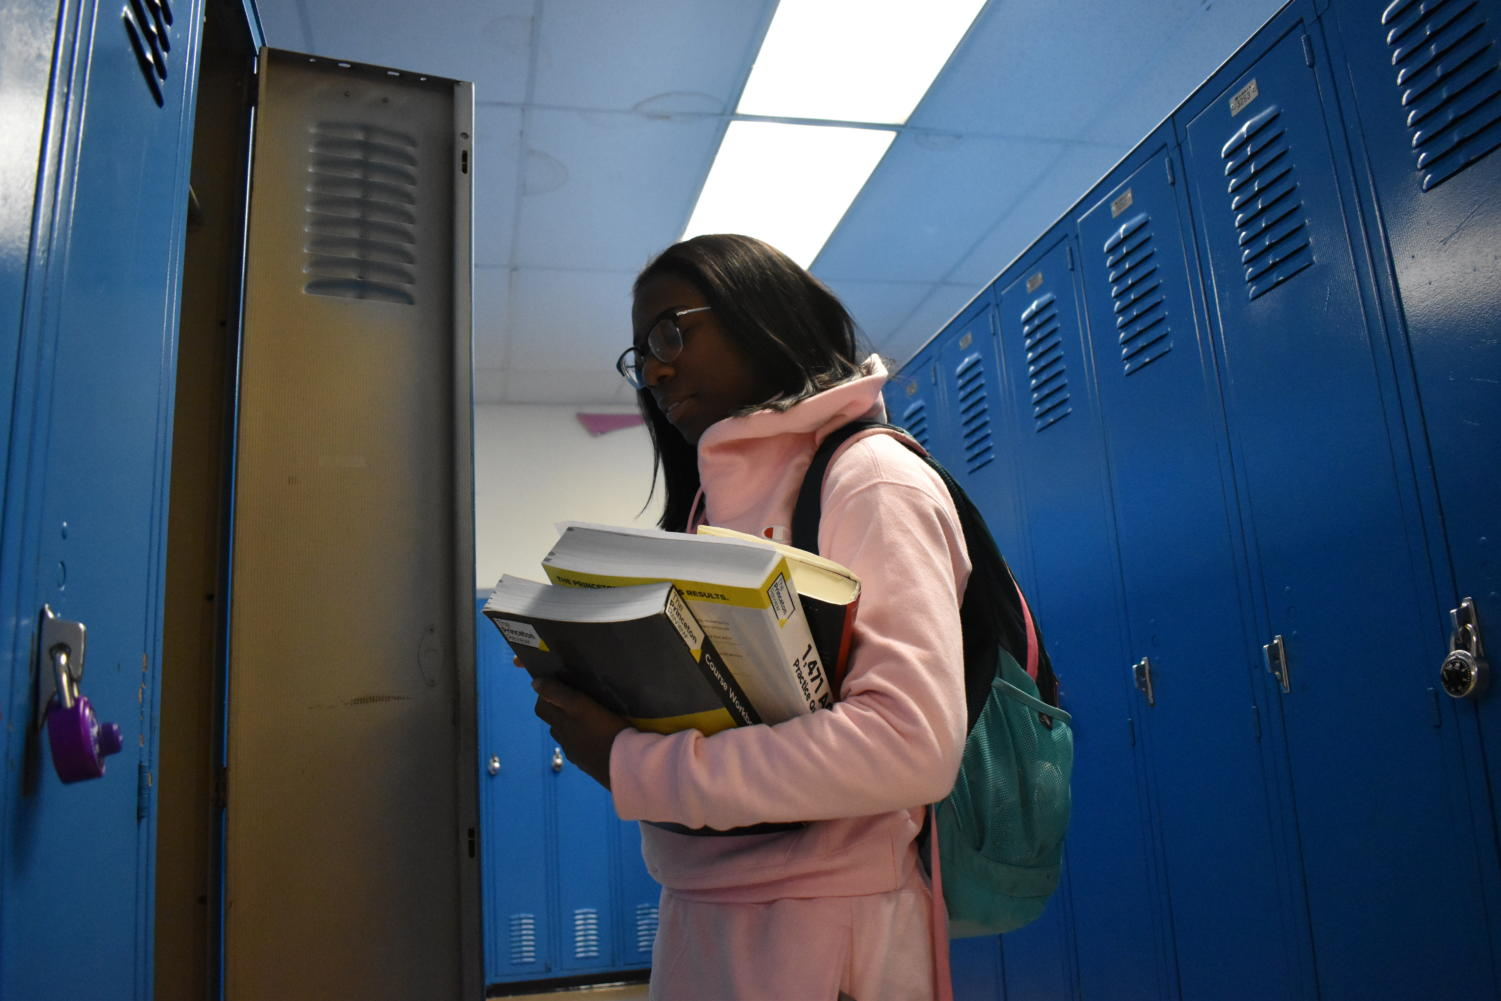 "An assortment of books cradled in her arms, junior Meela Abby arranges belongings in her locker. Abby was enrolled in Parkway from kindergarten, hoping to study psychology upon graduating high school. ""My sister went to school here and she told me that as soon as I come here, I need to start working. With my schedule you can't procrastinate or things go bad,"" Abby said. ""If you want your education, you have to work hard. It doesn't come easy."""